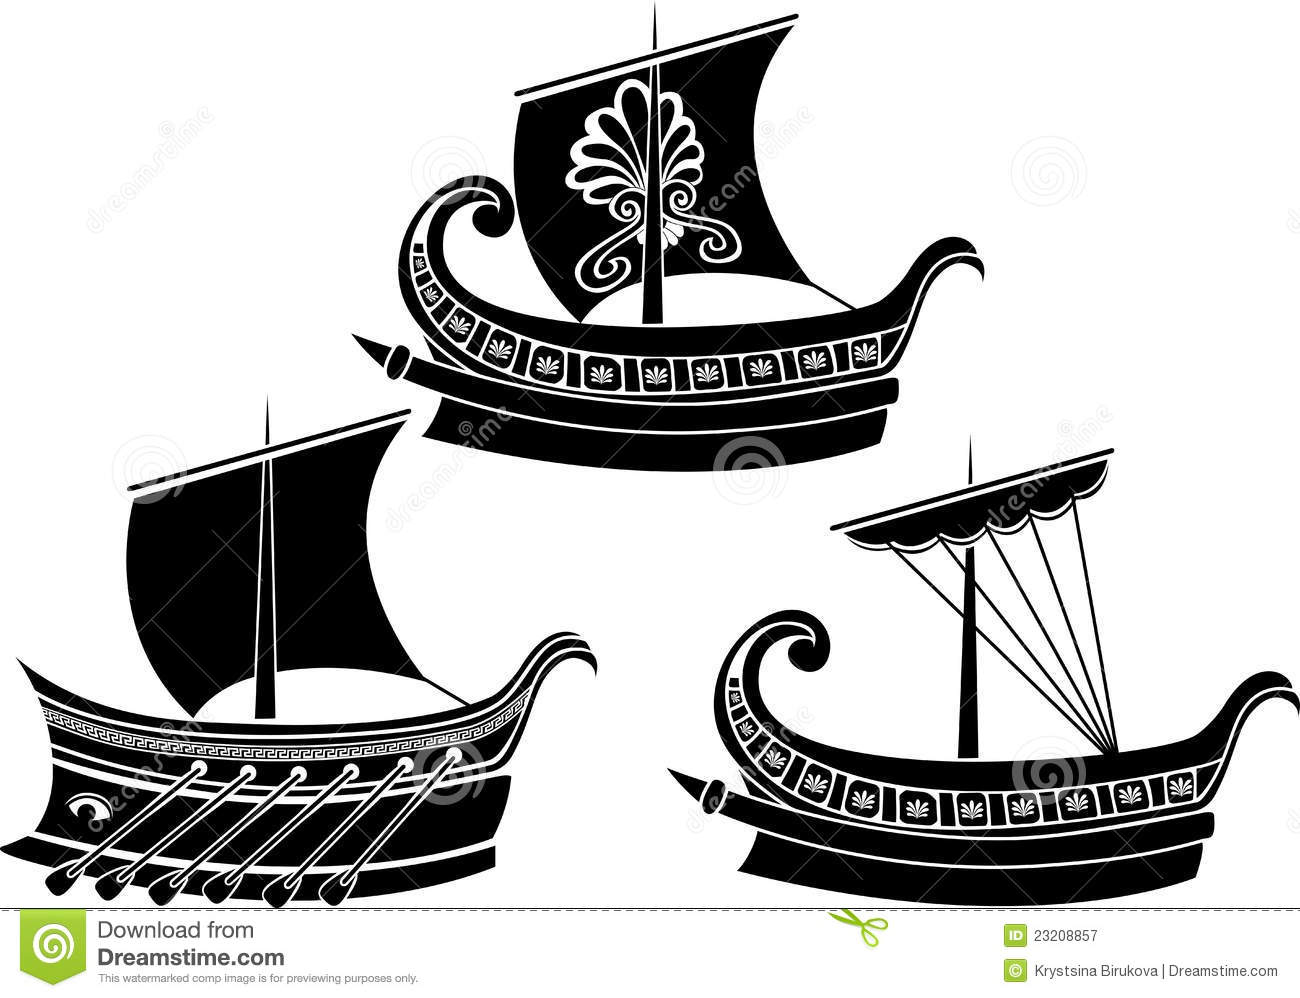 Greece clipart odysseus Greece man boat A couple